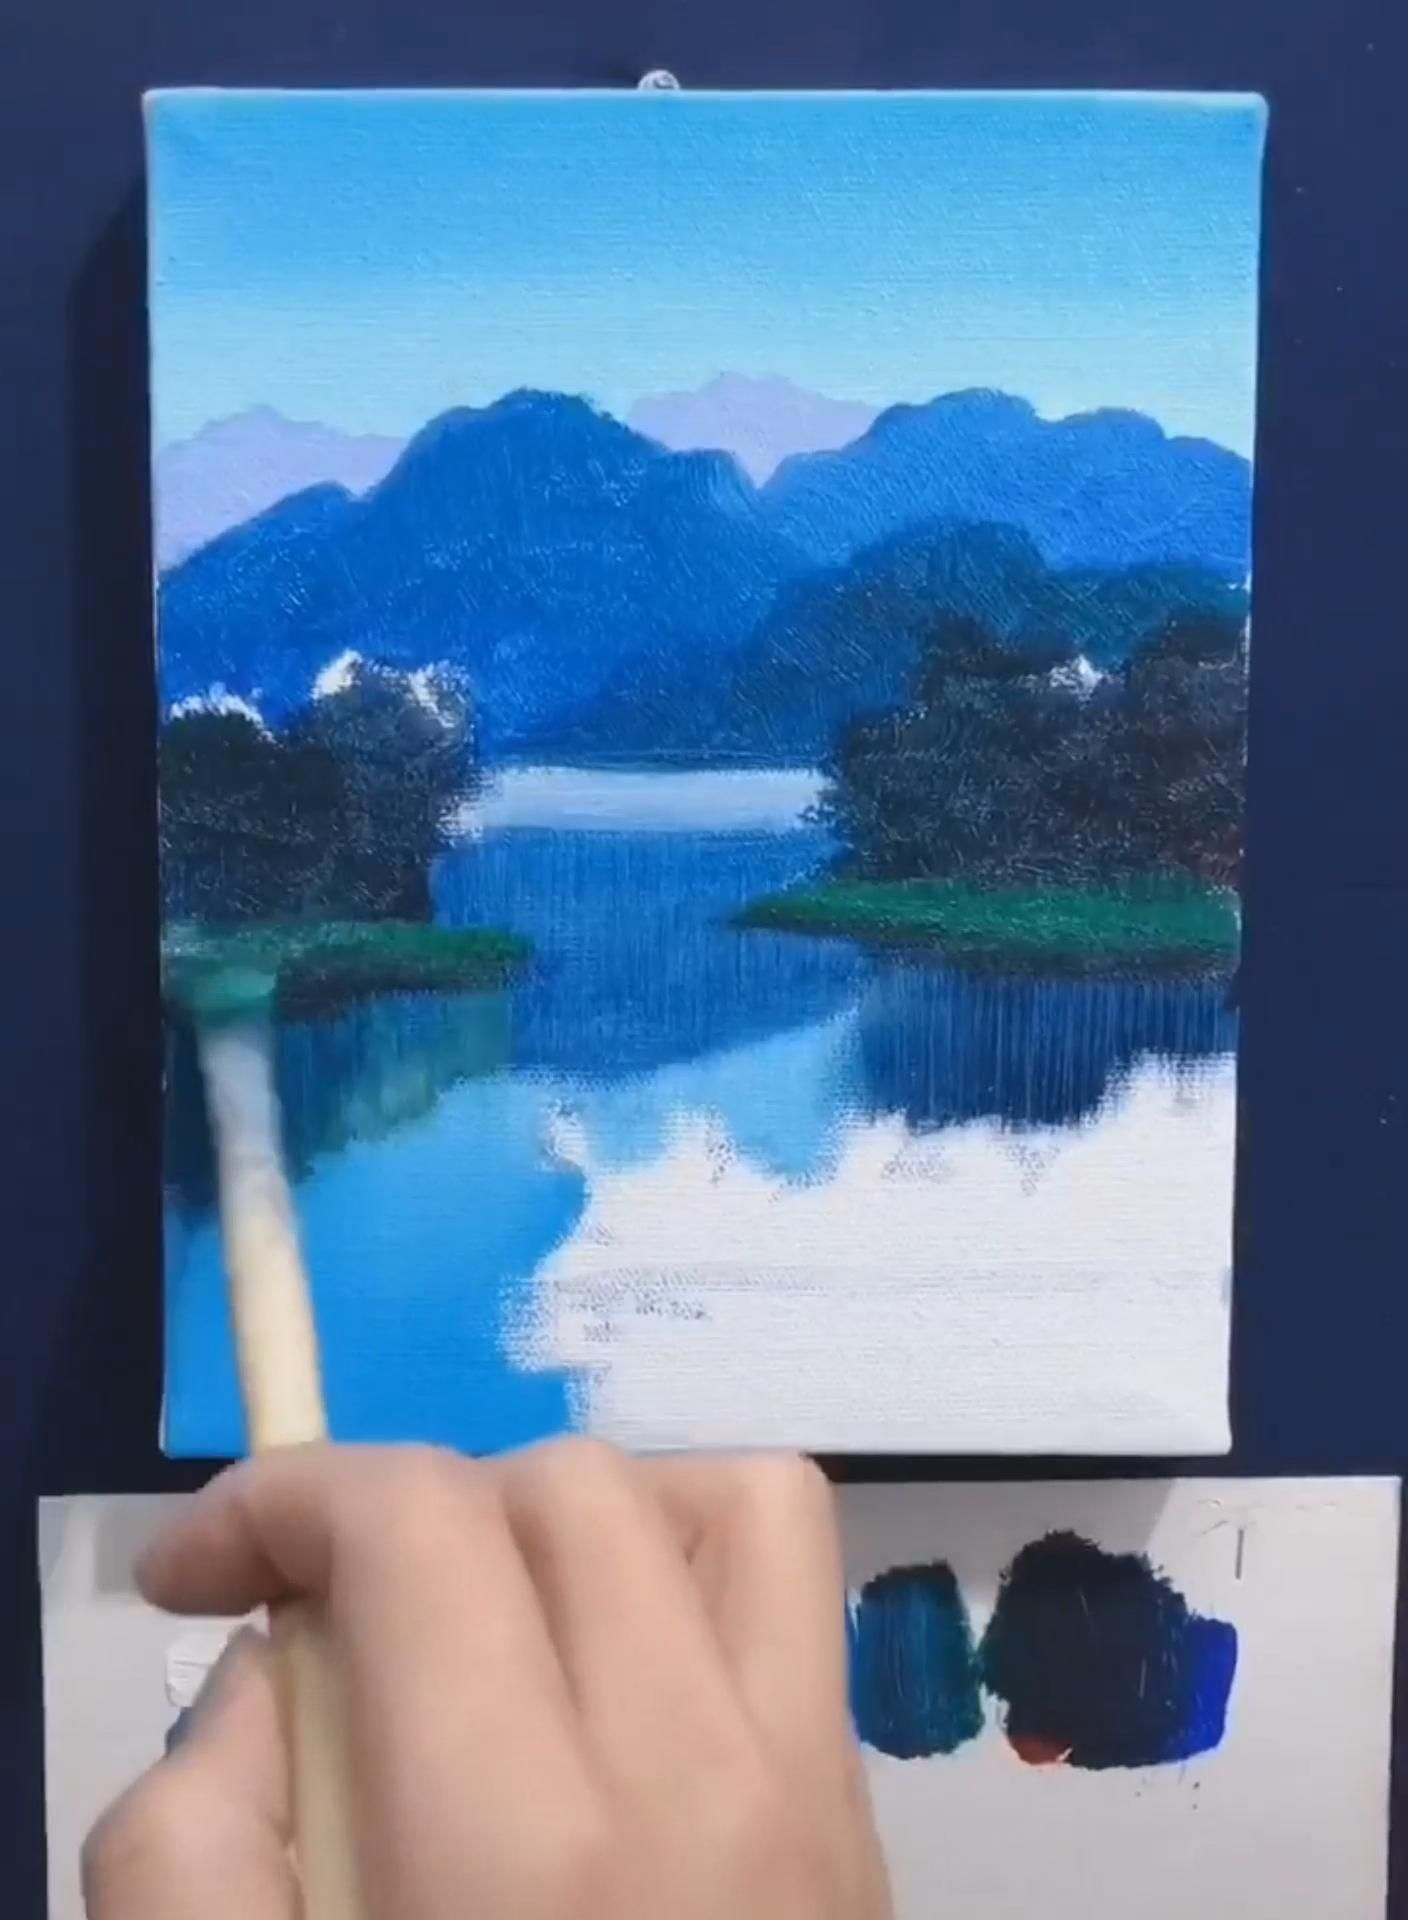 Let's learn to draw together. innovative Oil painting, # DIY Oil painting # Oil painting#Nature -   - #diy #Draw #innovative #learn #Lets #oil #painting #paintingNature #zeichnung